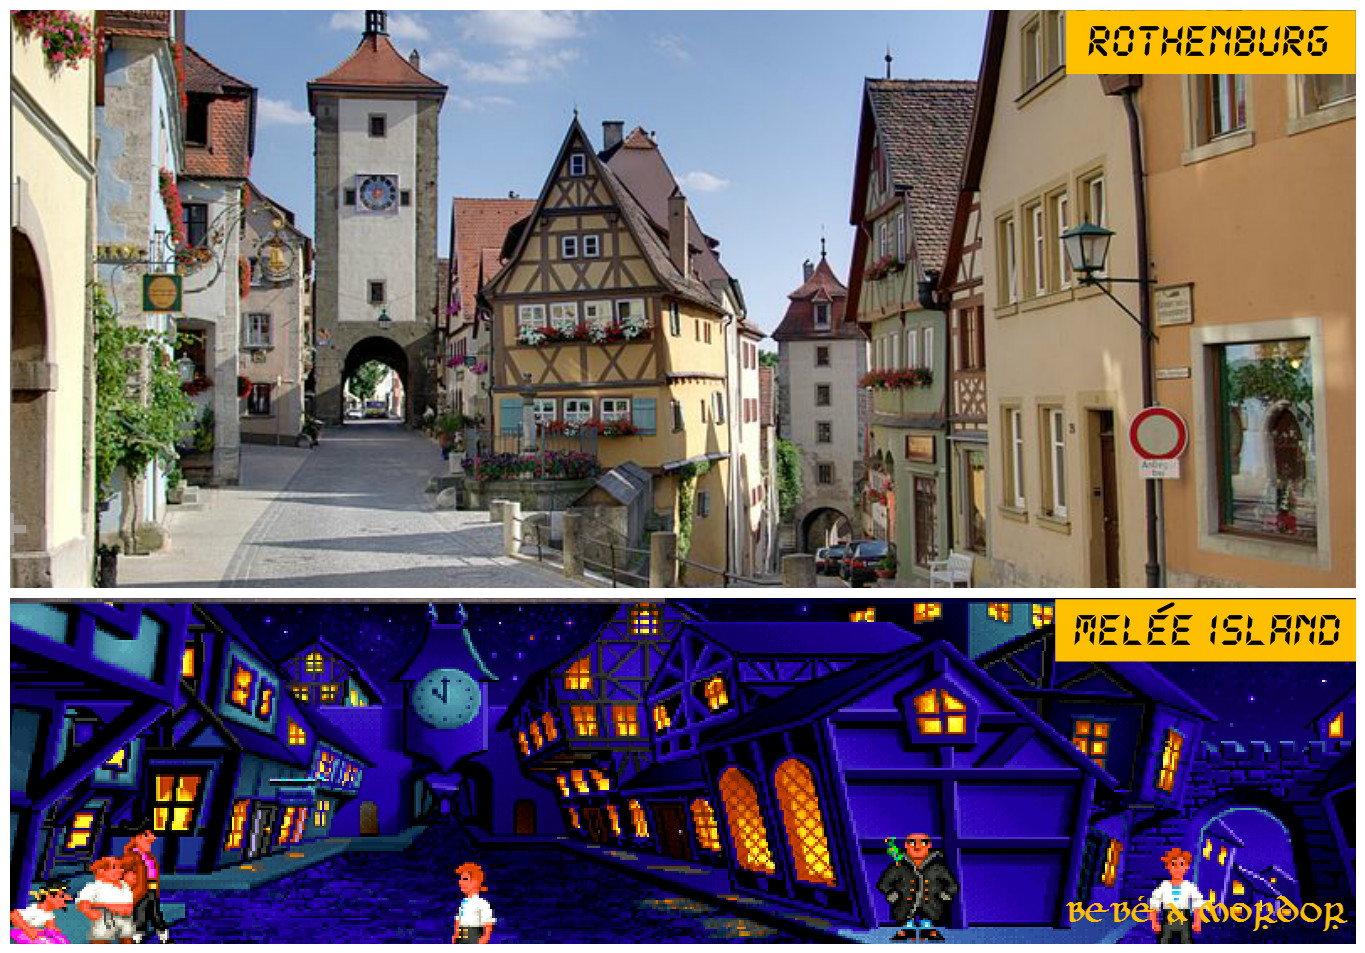 melee-island-rothenburg-monkey-island